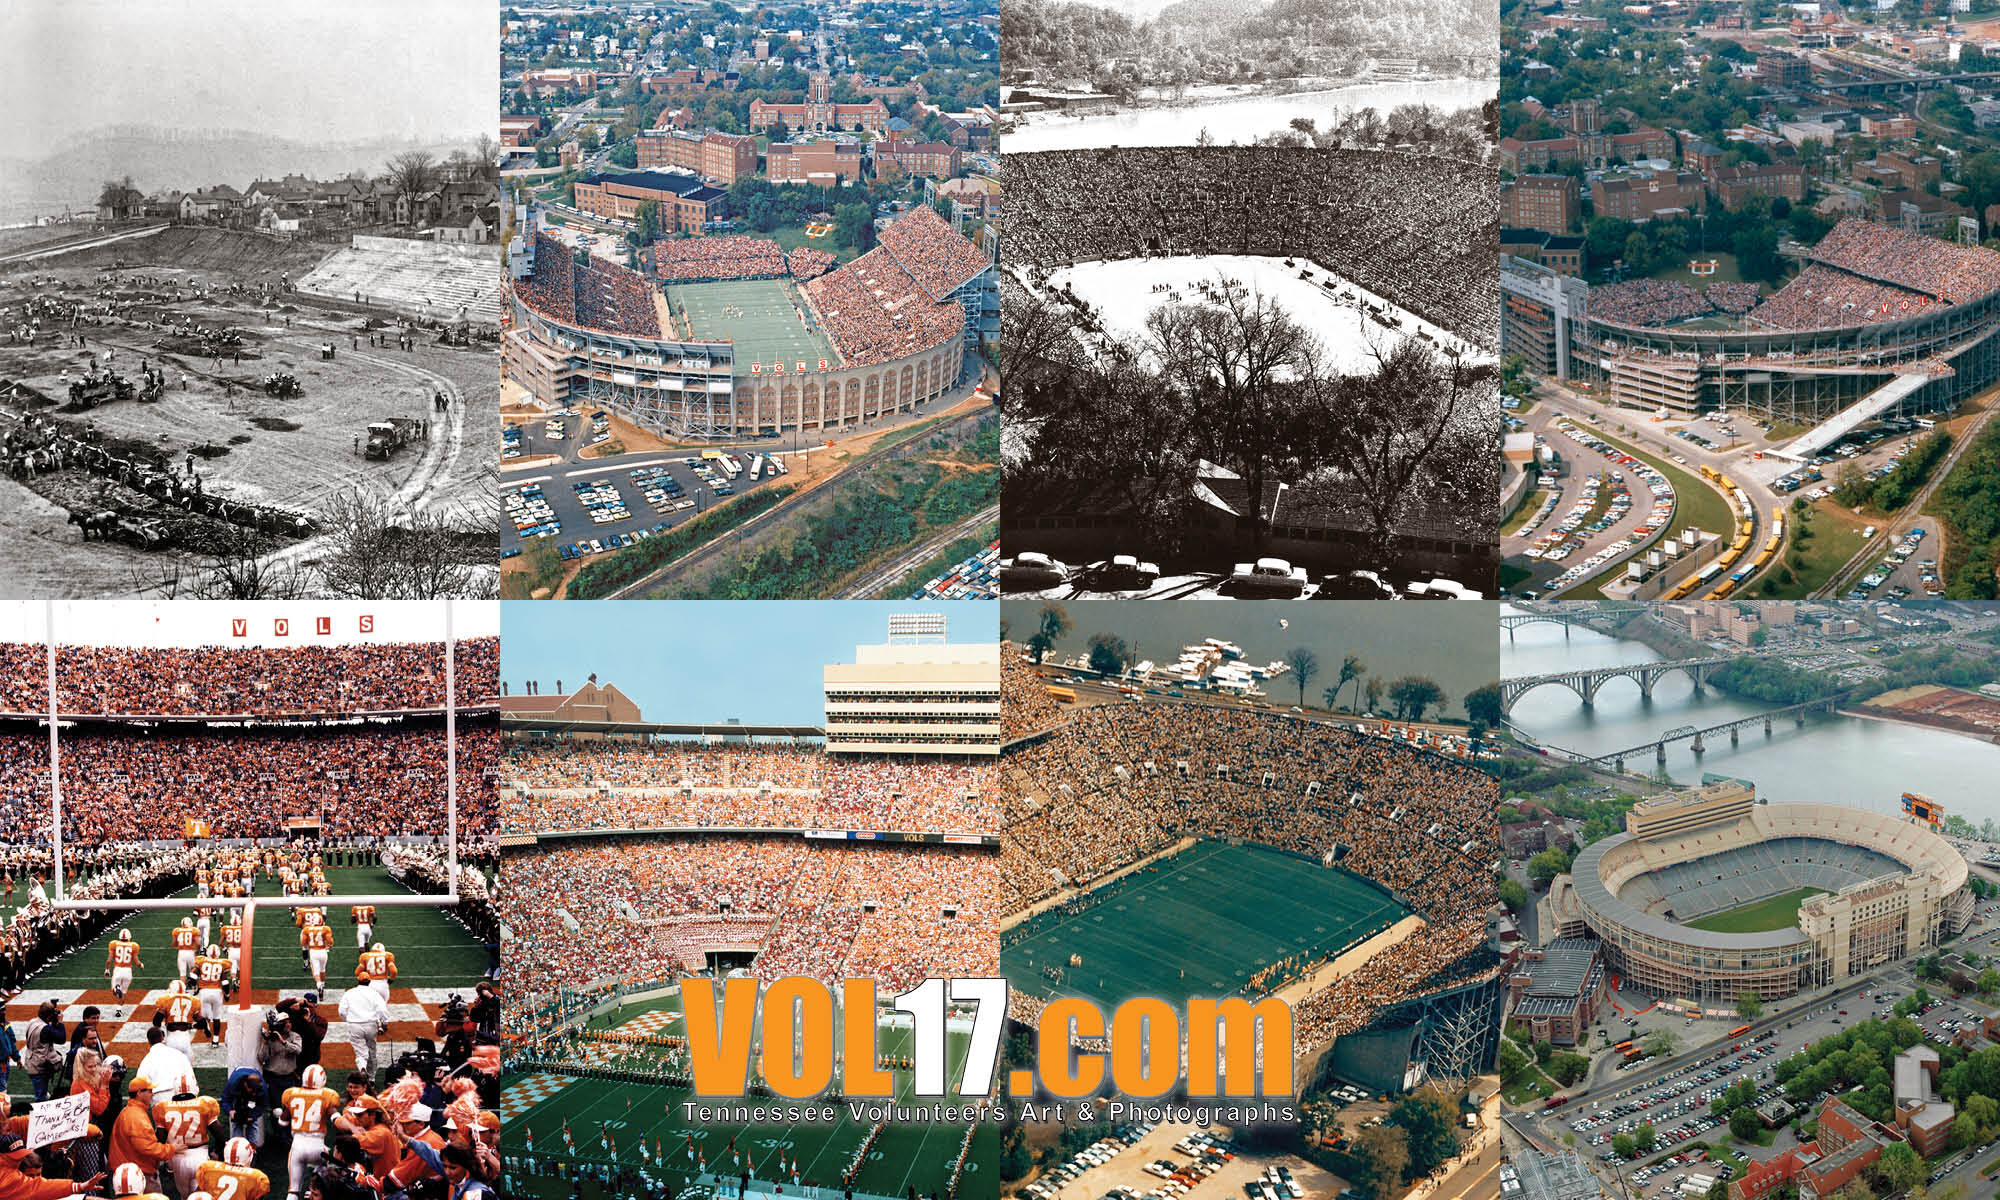 Neyland Stadium Old Collage of Photos